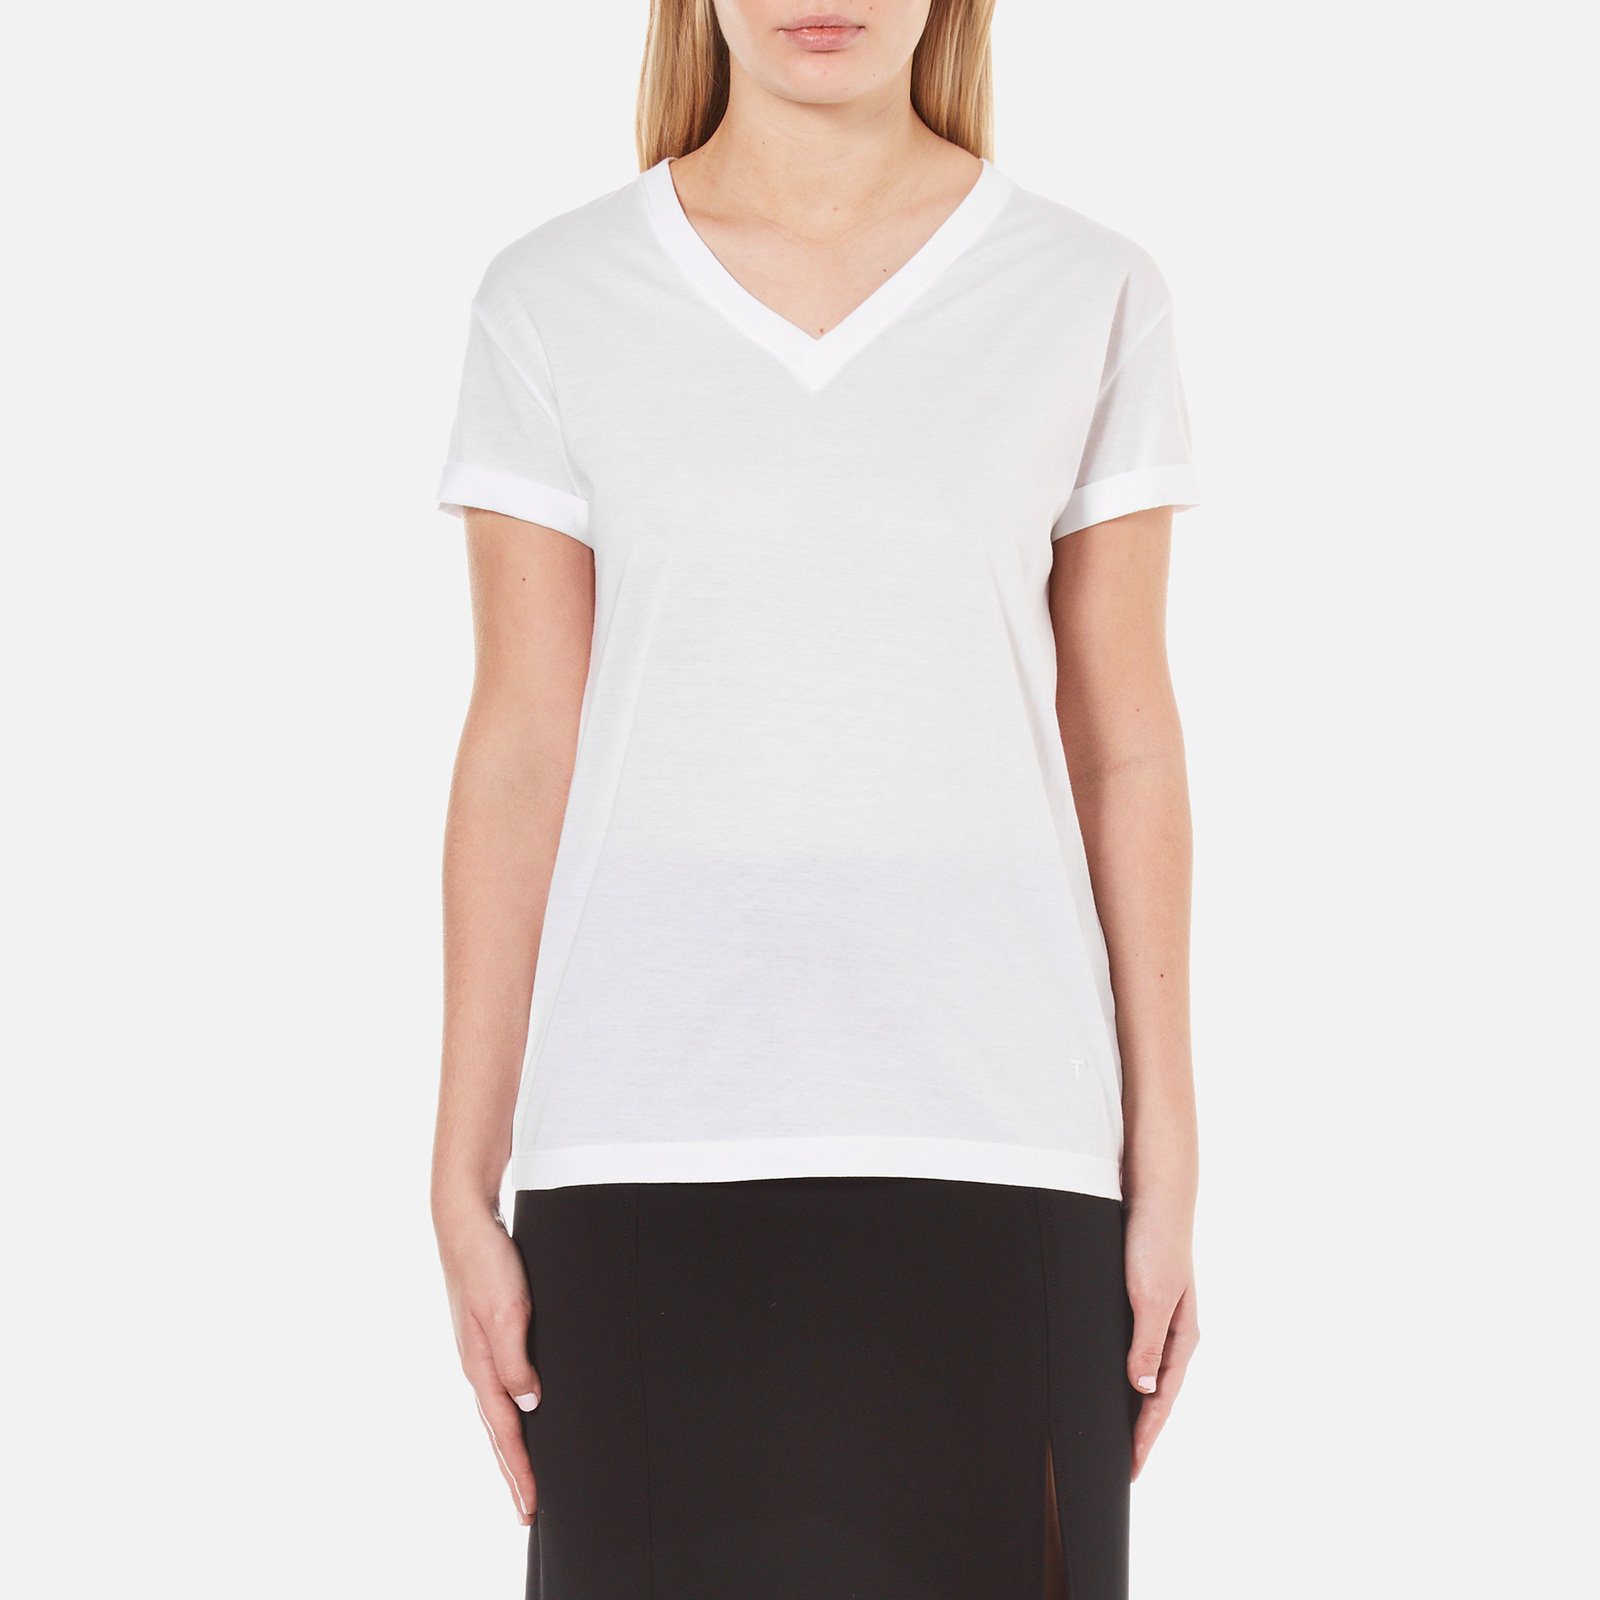 cceca88d4e77 T by Alexander Wang Women's Superfine Jersey Short Sleeve V Neck T-Shirt -  White - Free UK Delivery over £50